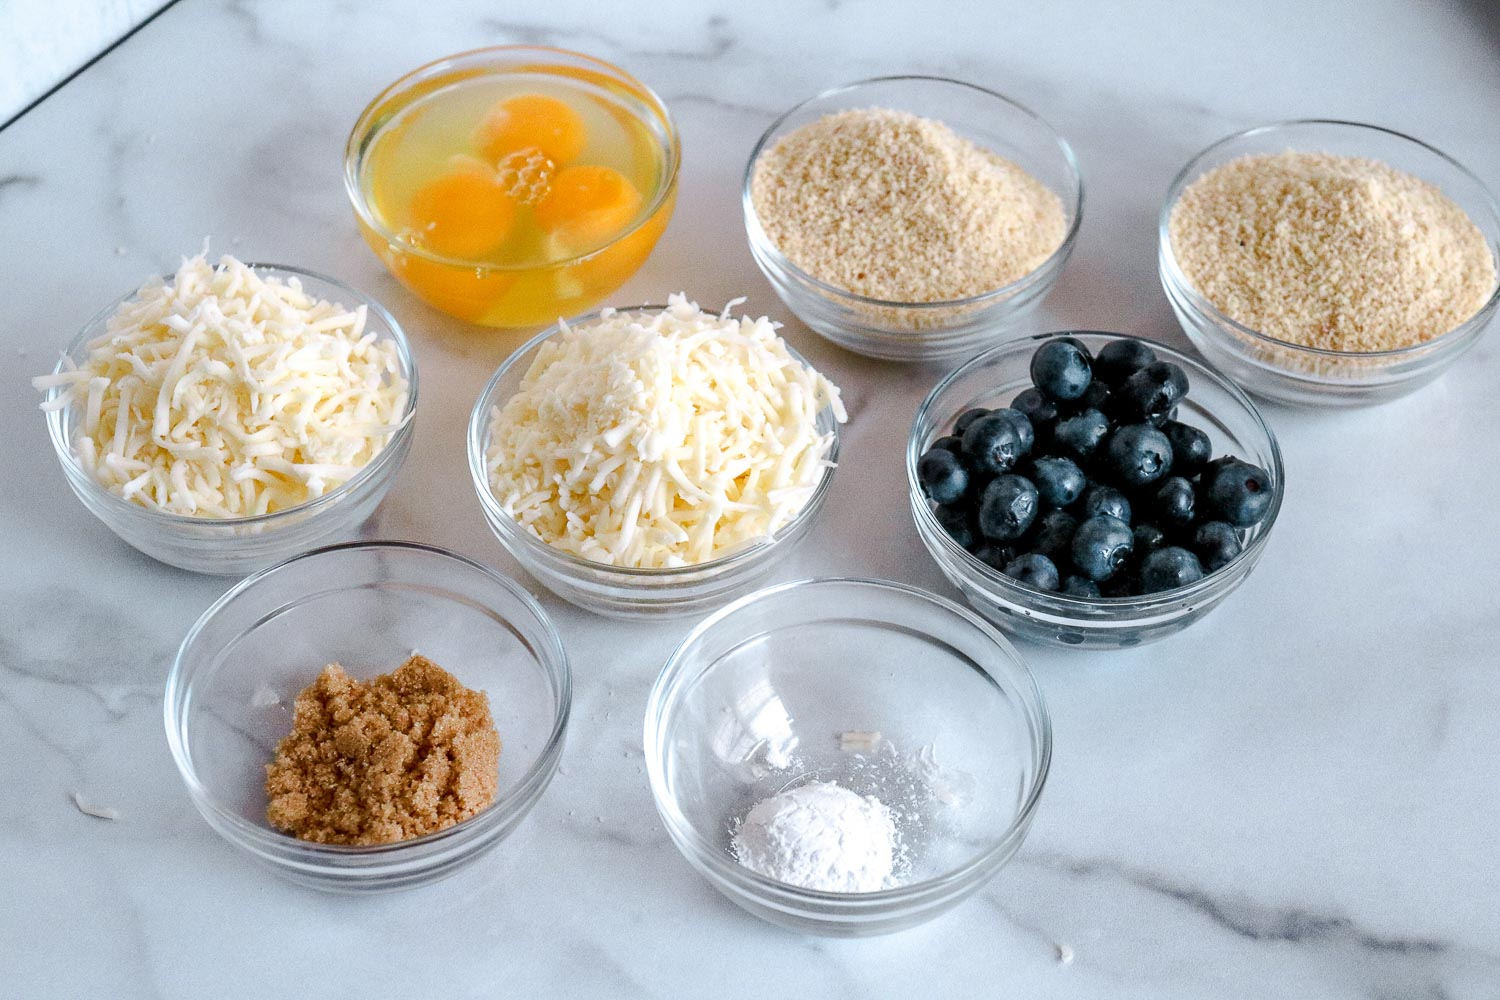 8 small glass bowls full of eggs, almond flour, mozzarella cheese, swerve, blueberries and baking powder.